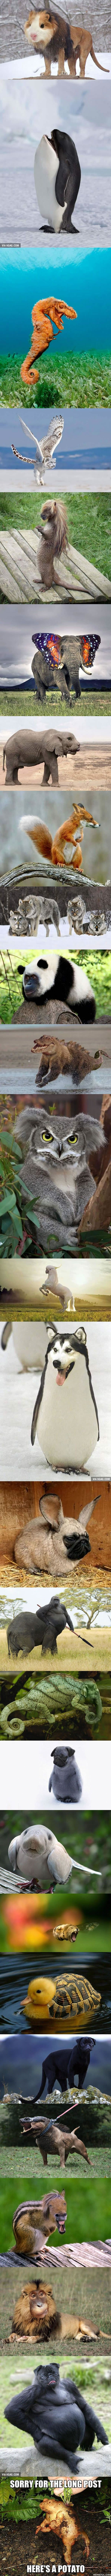 These animal hybrids never get old to me